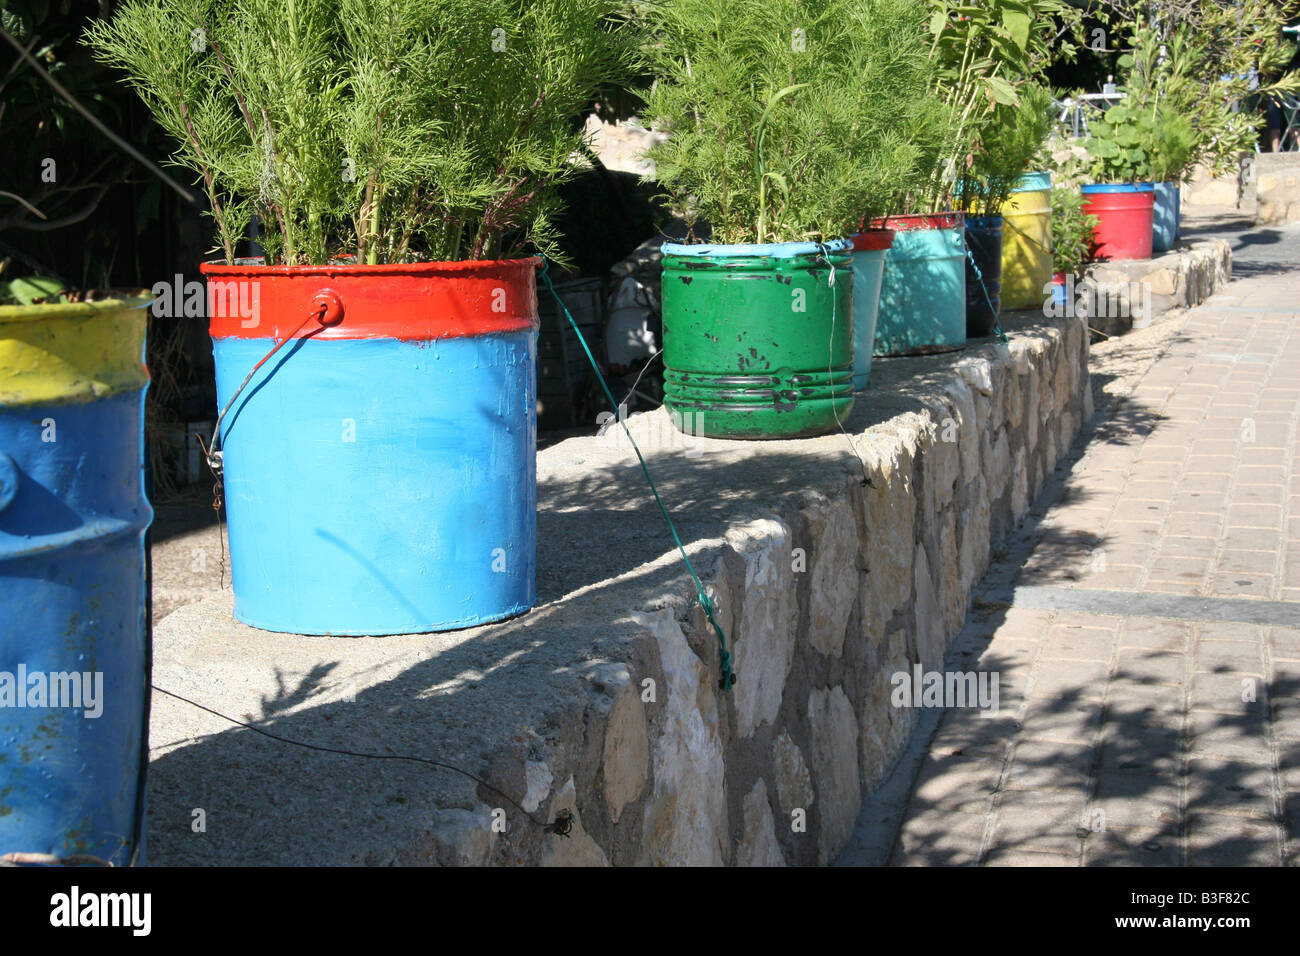 Multi colored plant buckets in Cuenca, Spain. - Stock Image